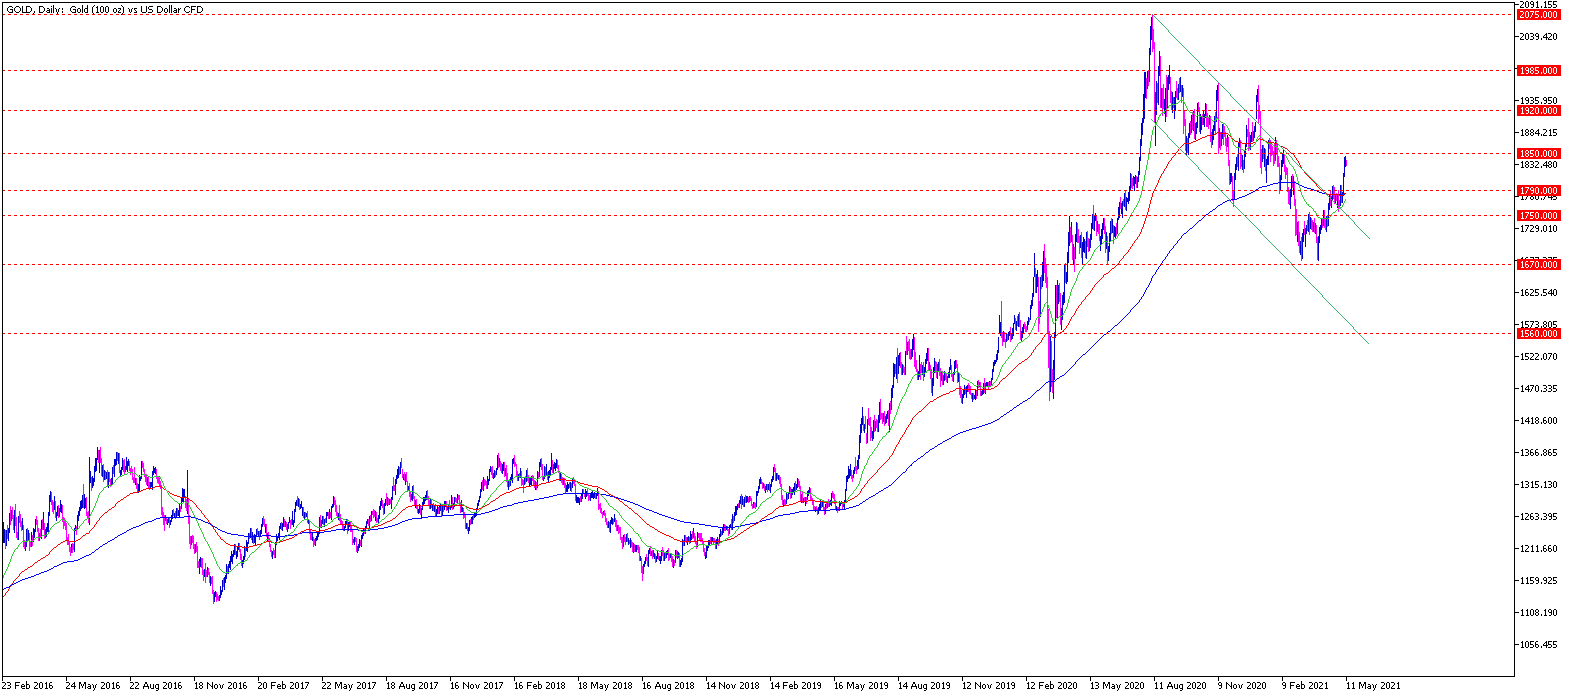 Gold Chartanalyse daily am 11.05.2021 - Daytrading